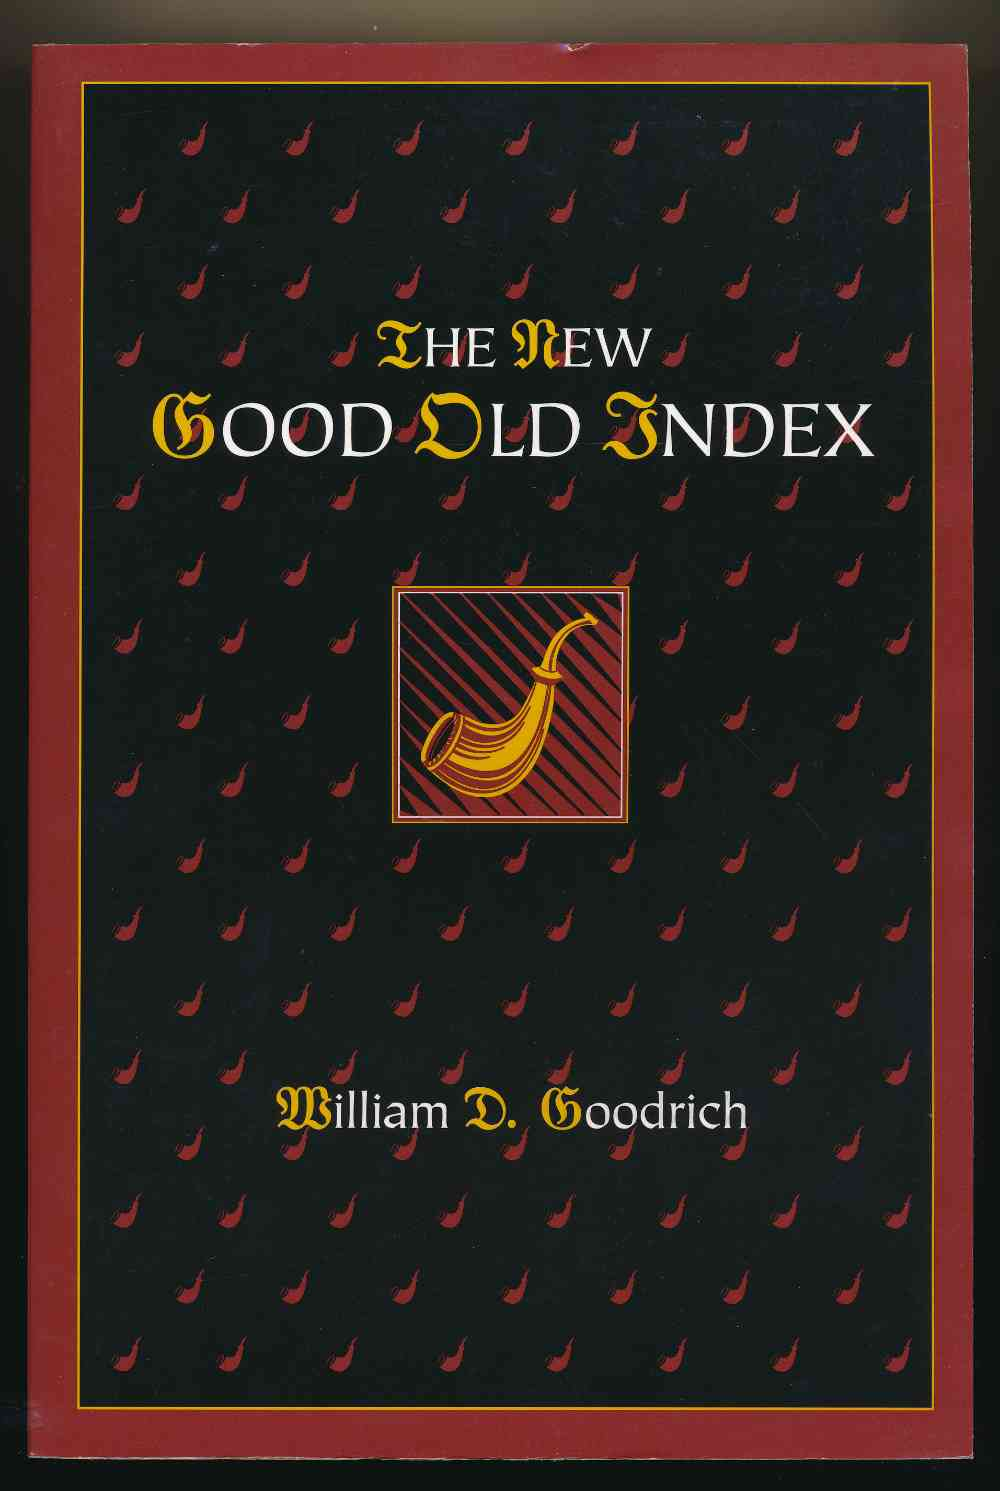 The new good old index